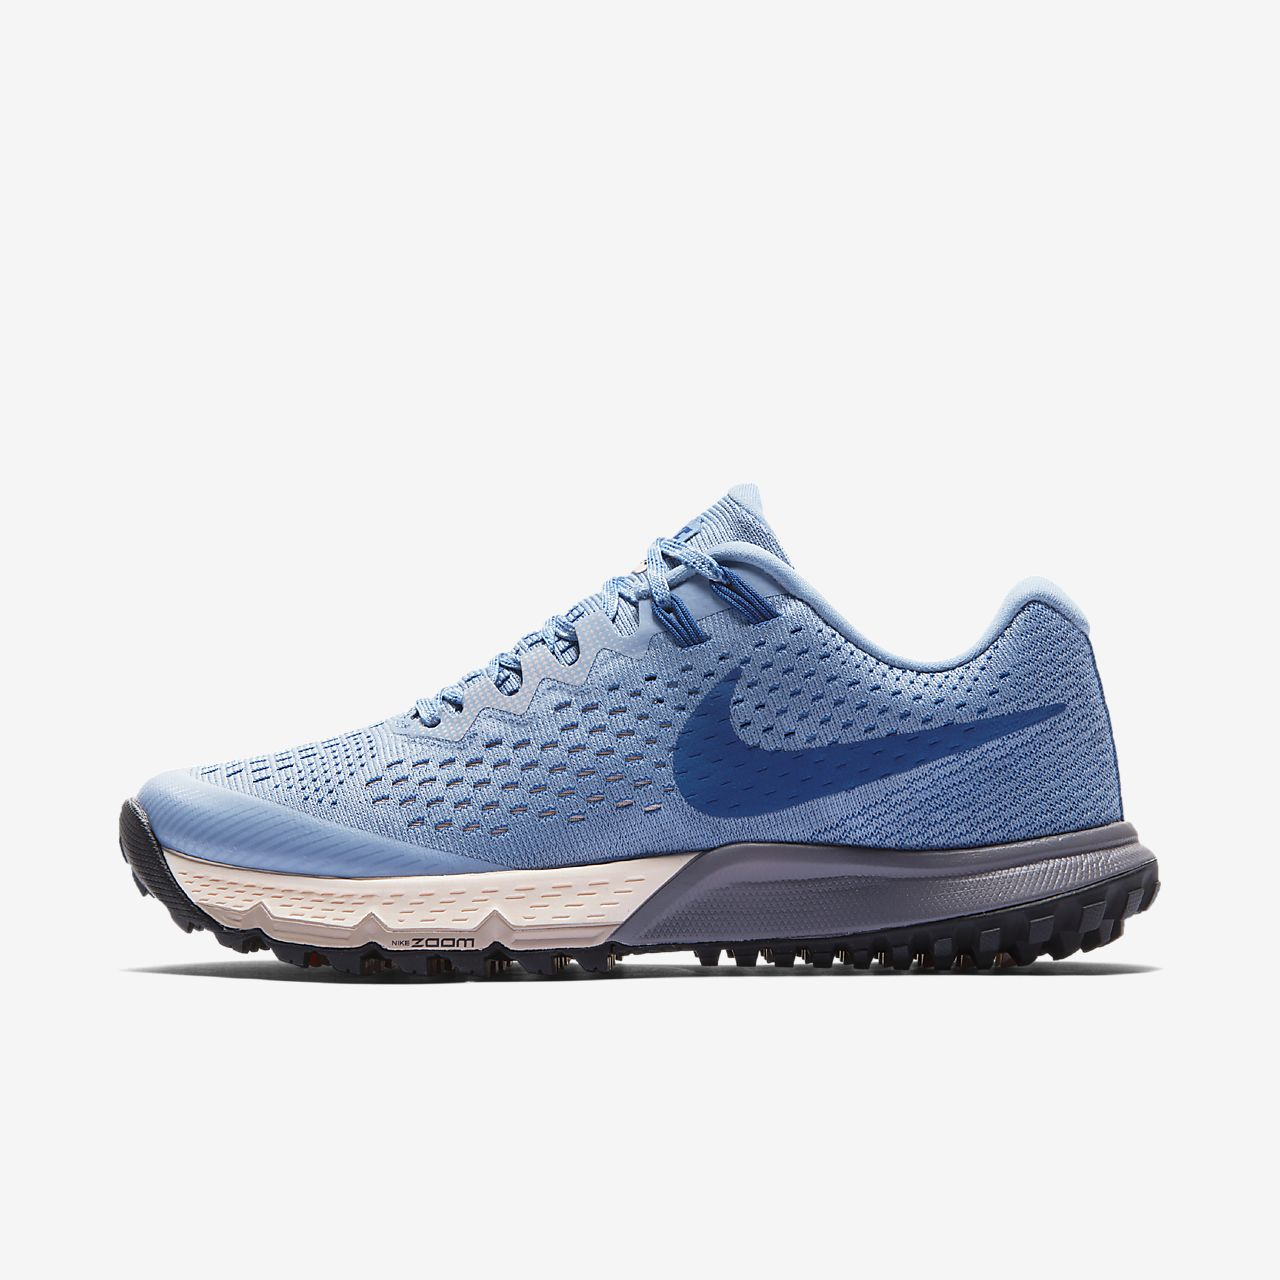 Air Pour Zoom Running Be Nike Chaussure Femme Kiger 4 Terra De tqw1x7P